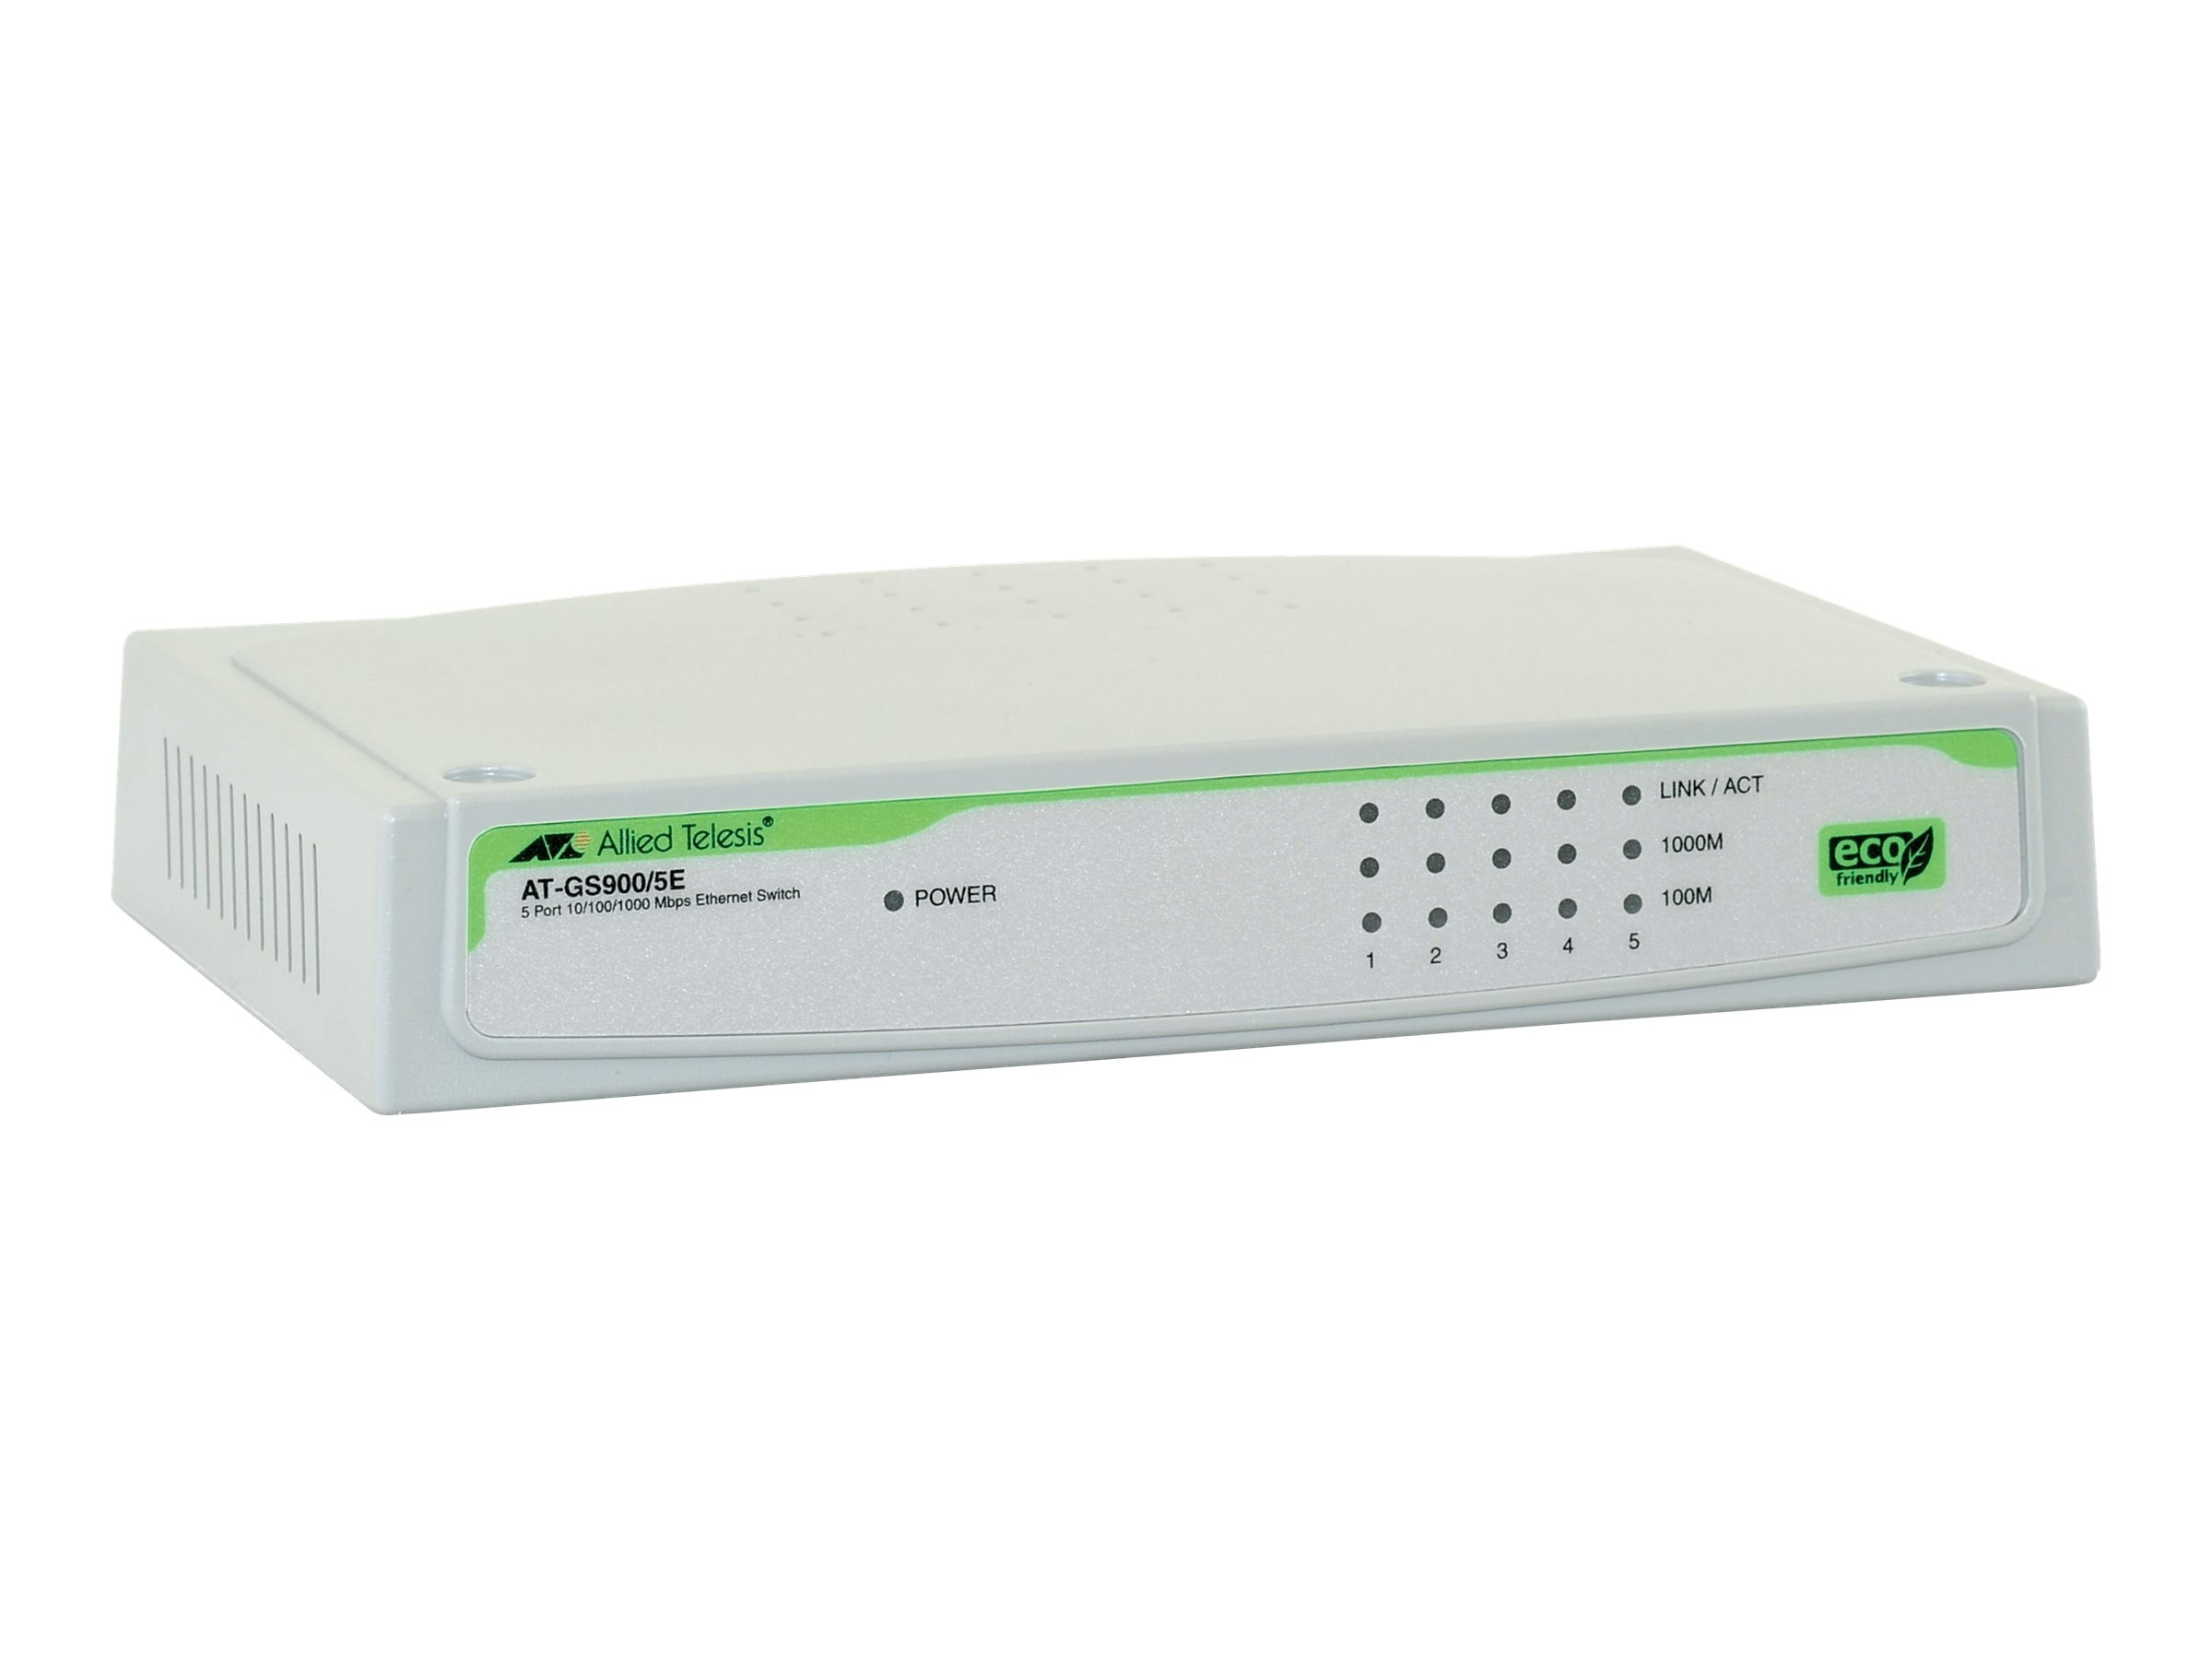 Allied Telesis 5-Port 10 100 1000BaseT Unmanaged-Gigabit Switch EXP PS, AT-GS900/5E-10, 7307689, Network Switches